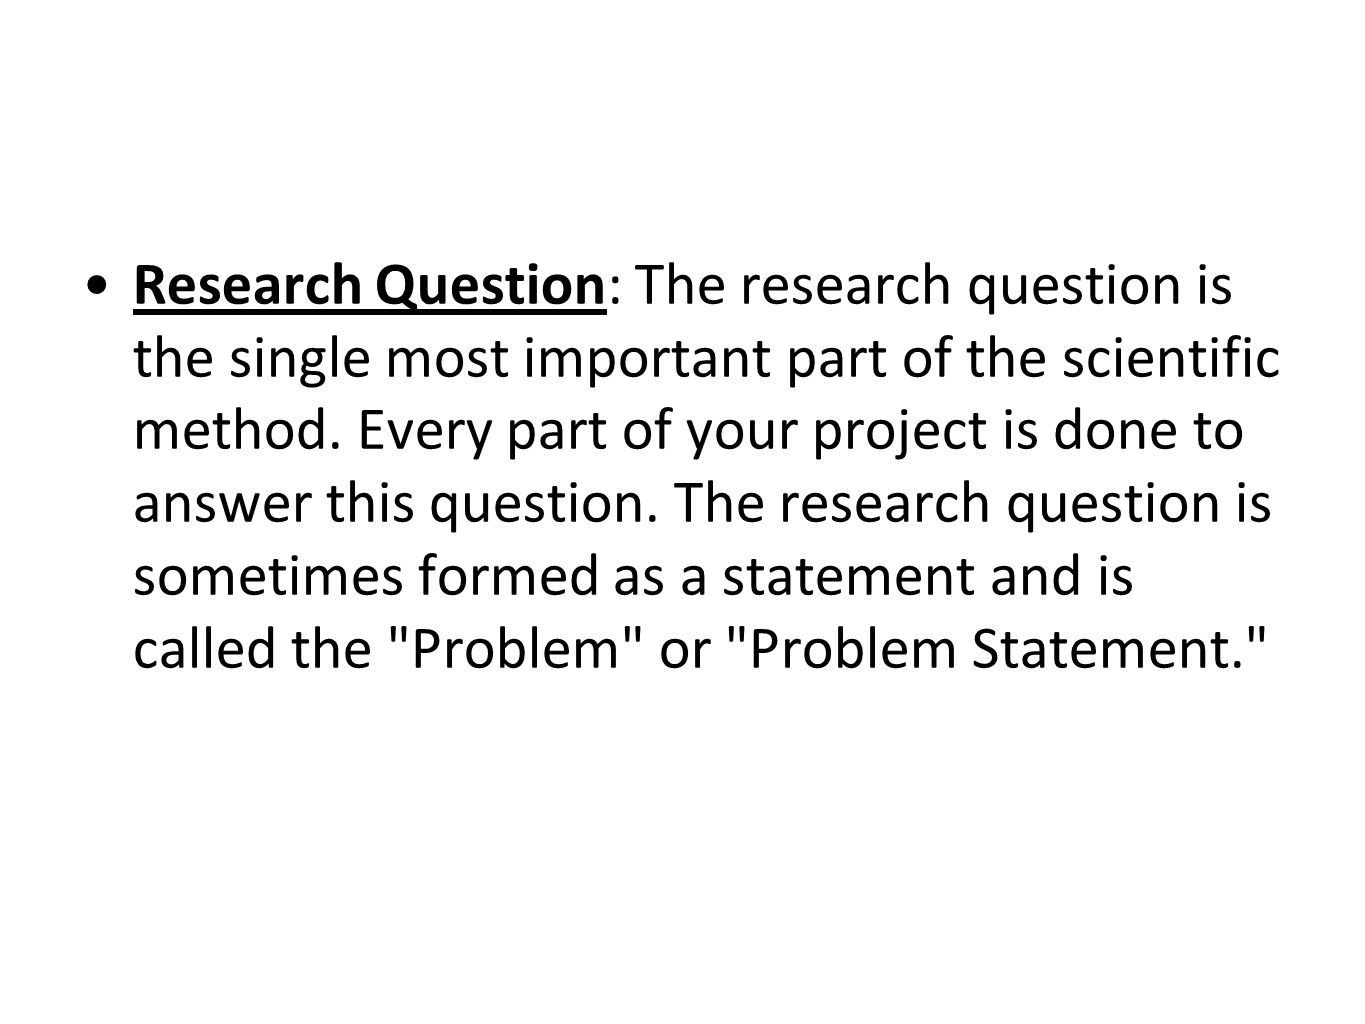 Hypothesis: The hypothesis is an educated guess, formed as a statement, that you propose to be the answer to the research question.